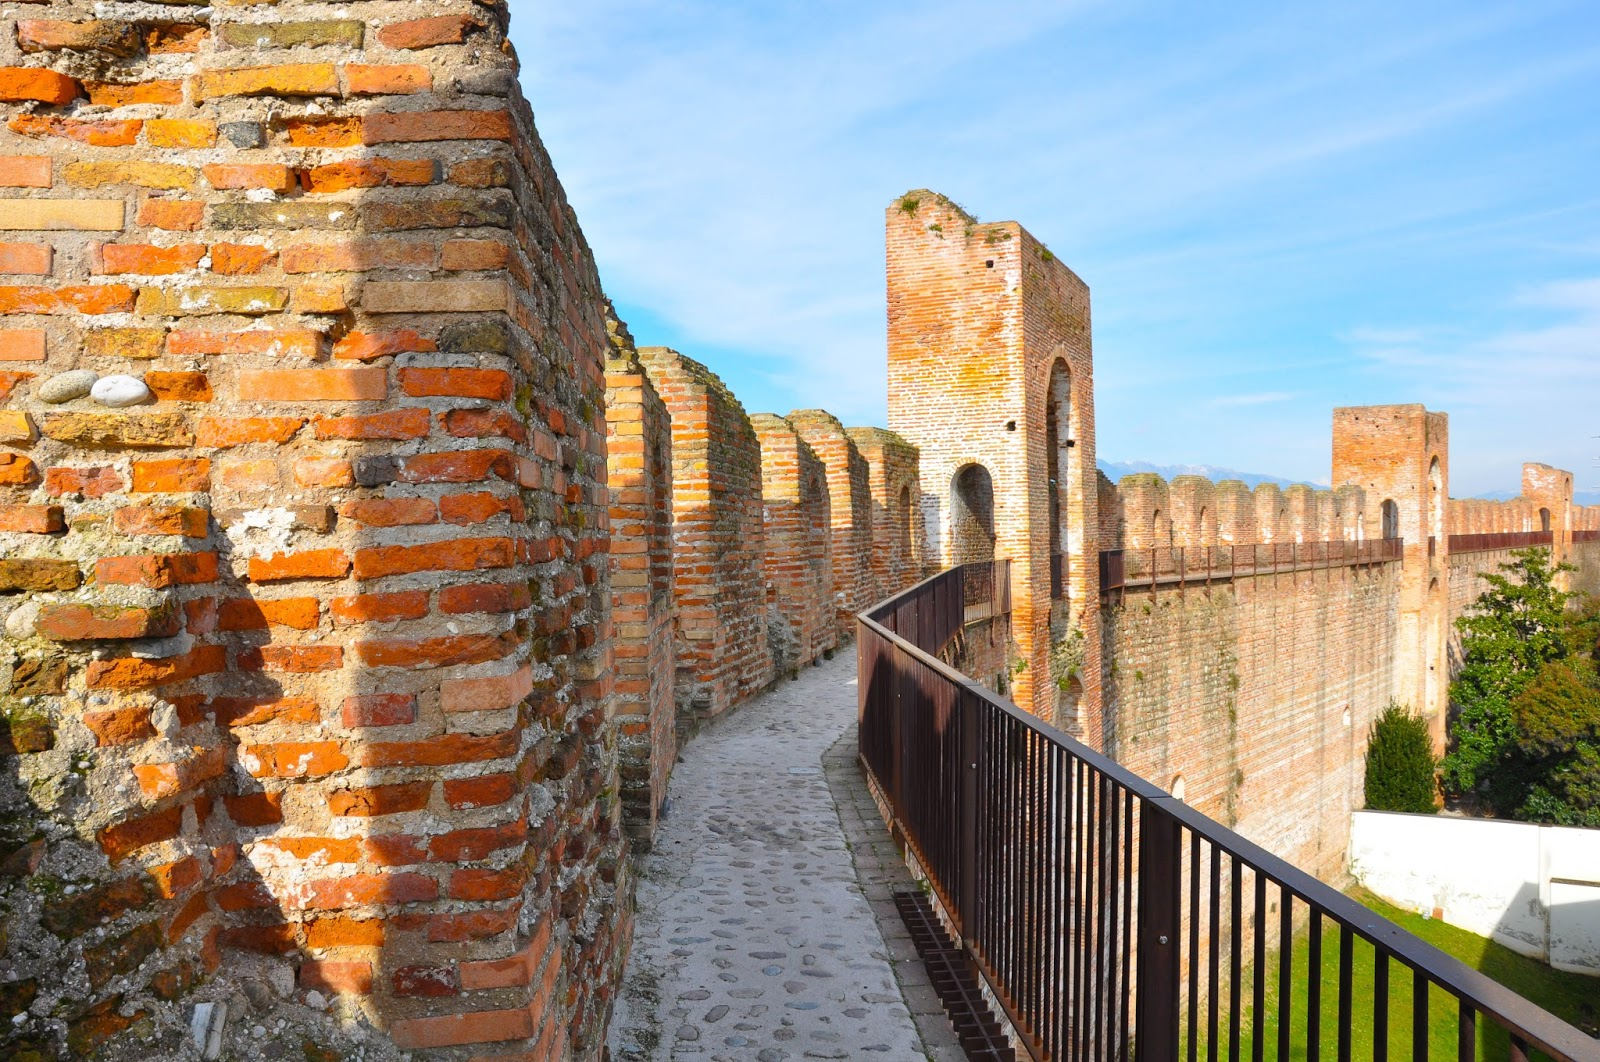 A close up of the medieval wall of the town of Cittadella, Veneto, Italy